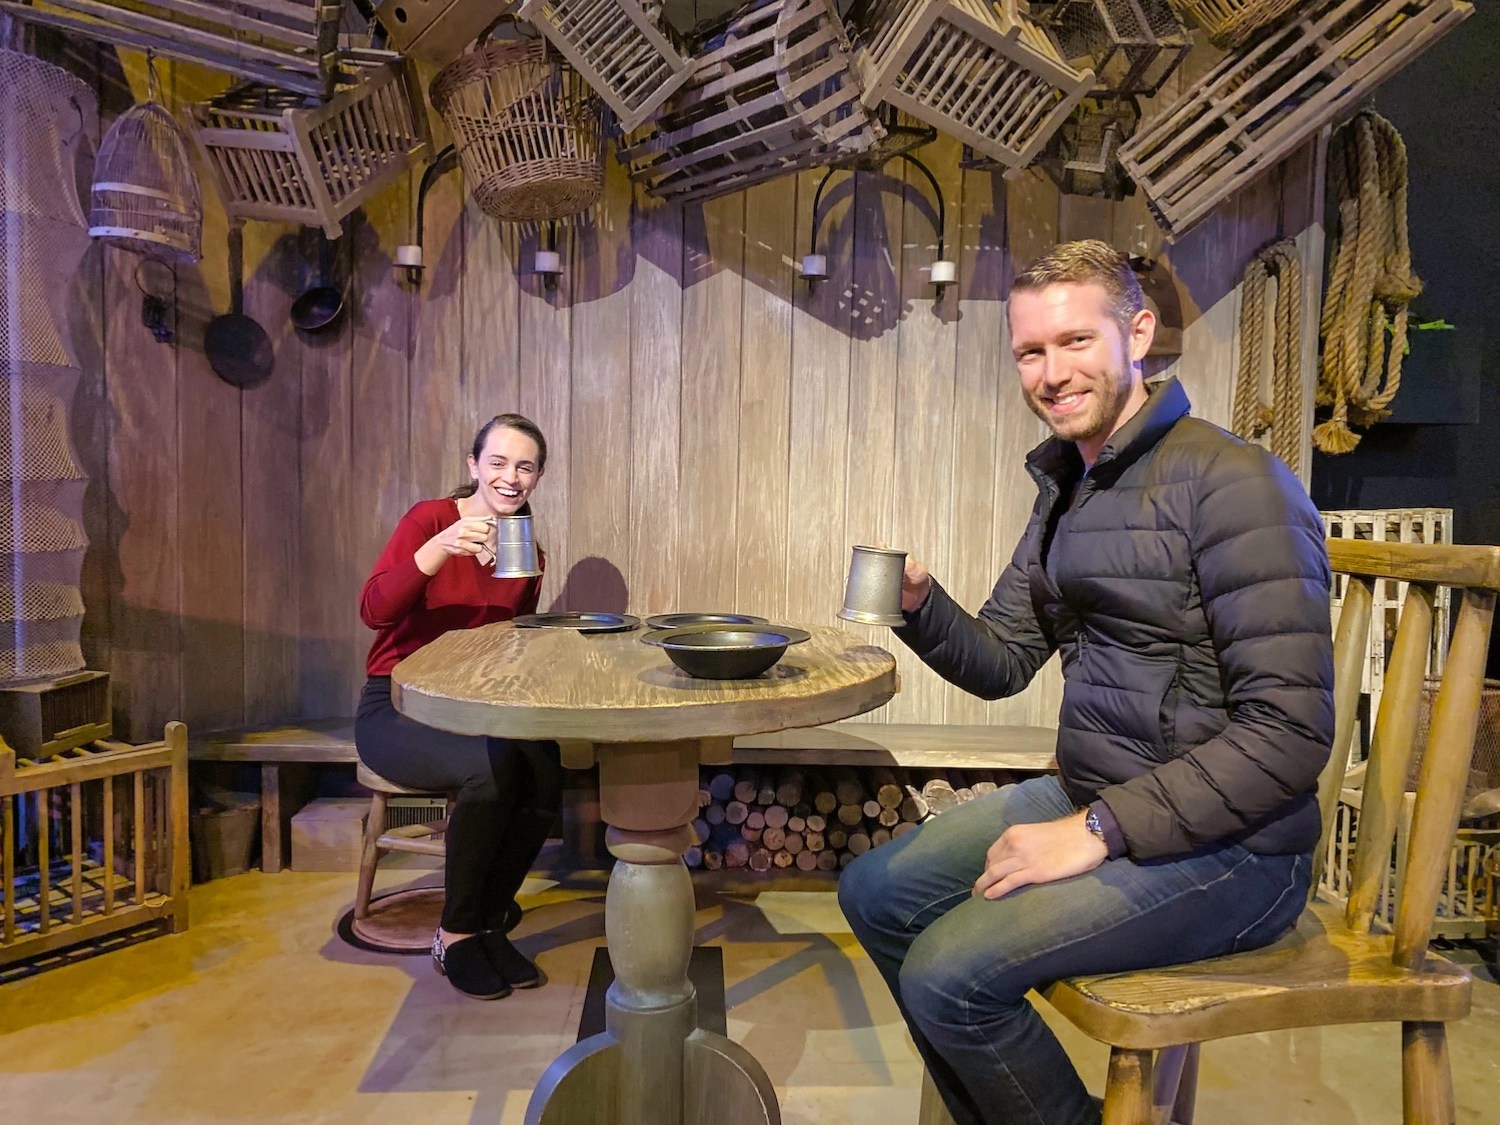 Harry Potter Studio Tour - Forced Perspective